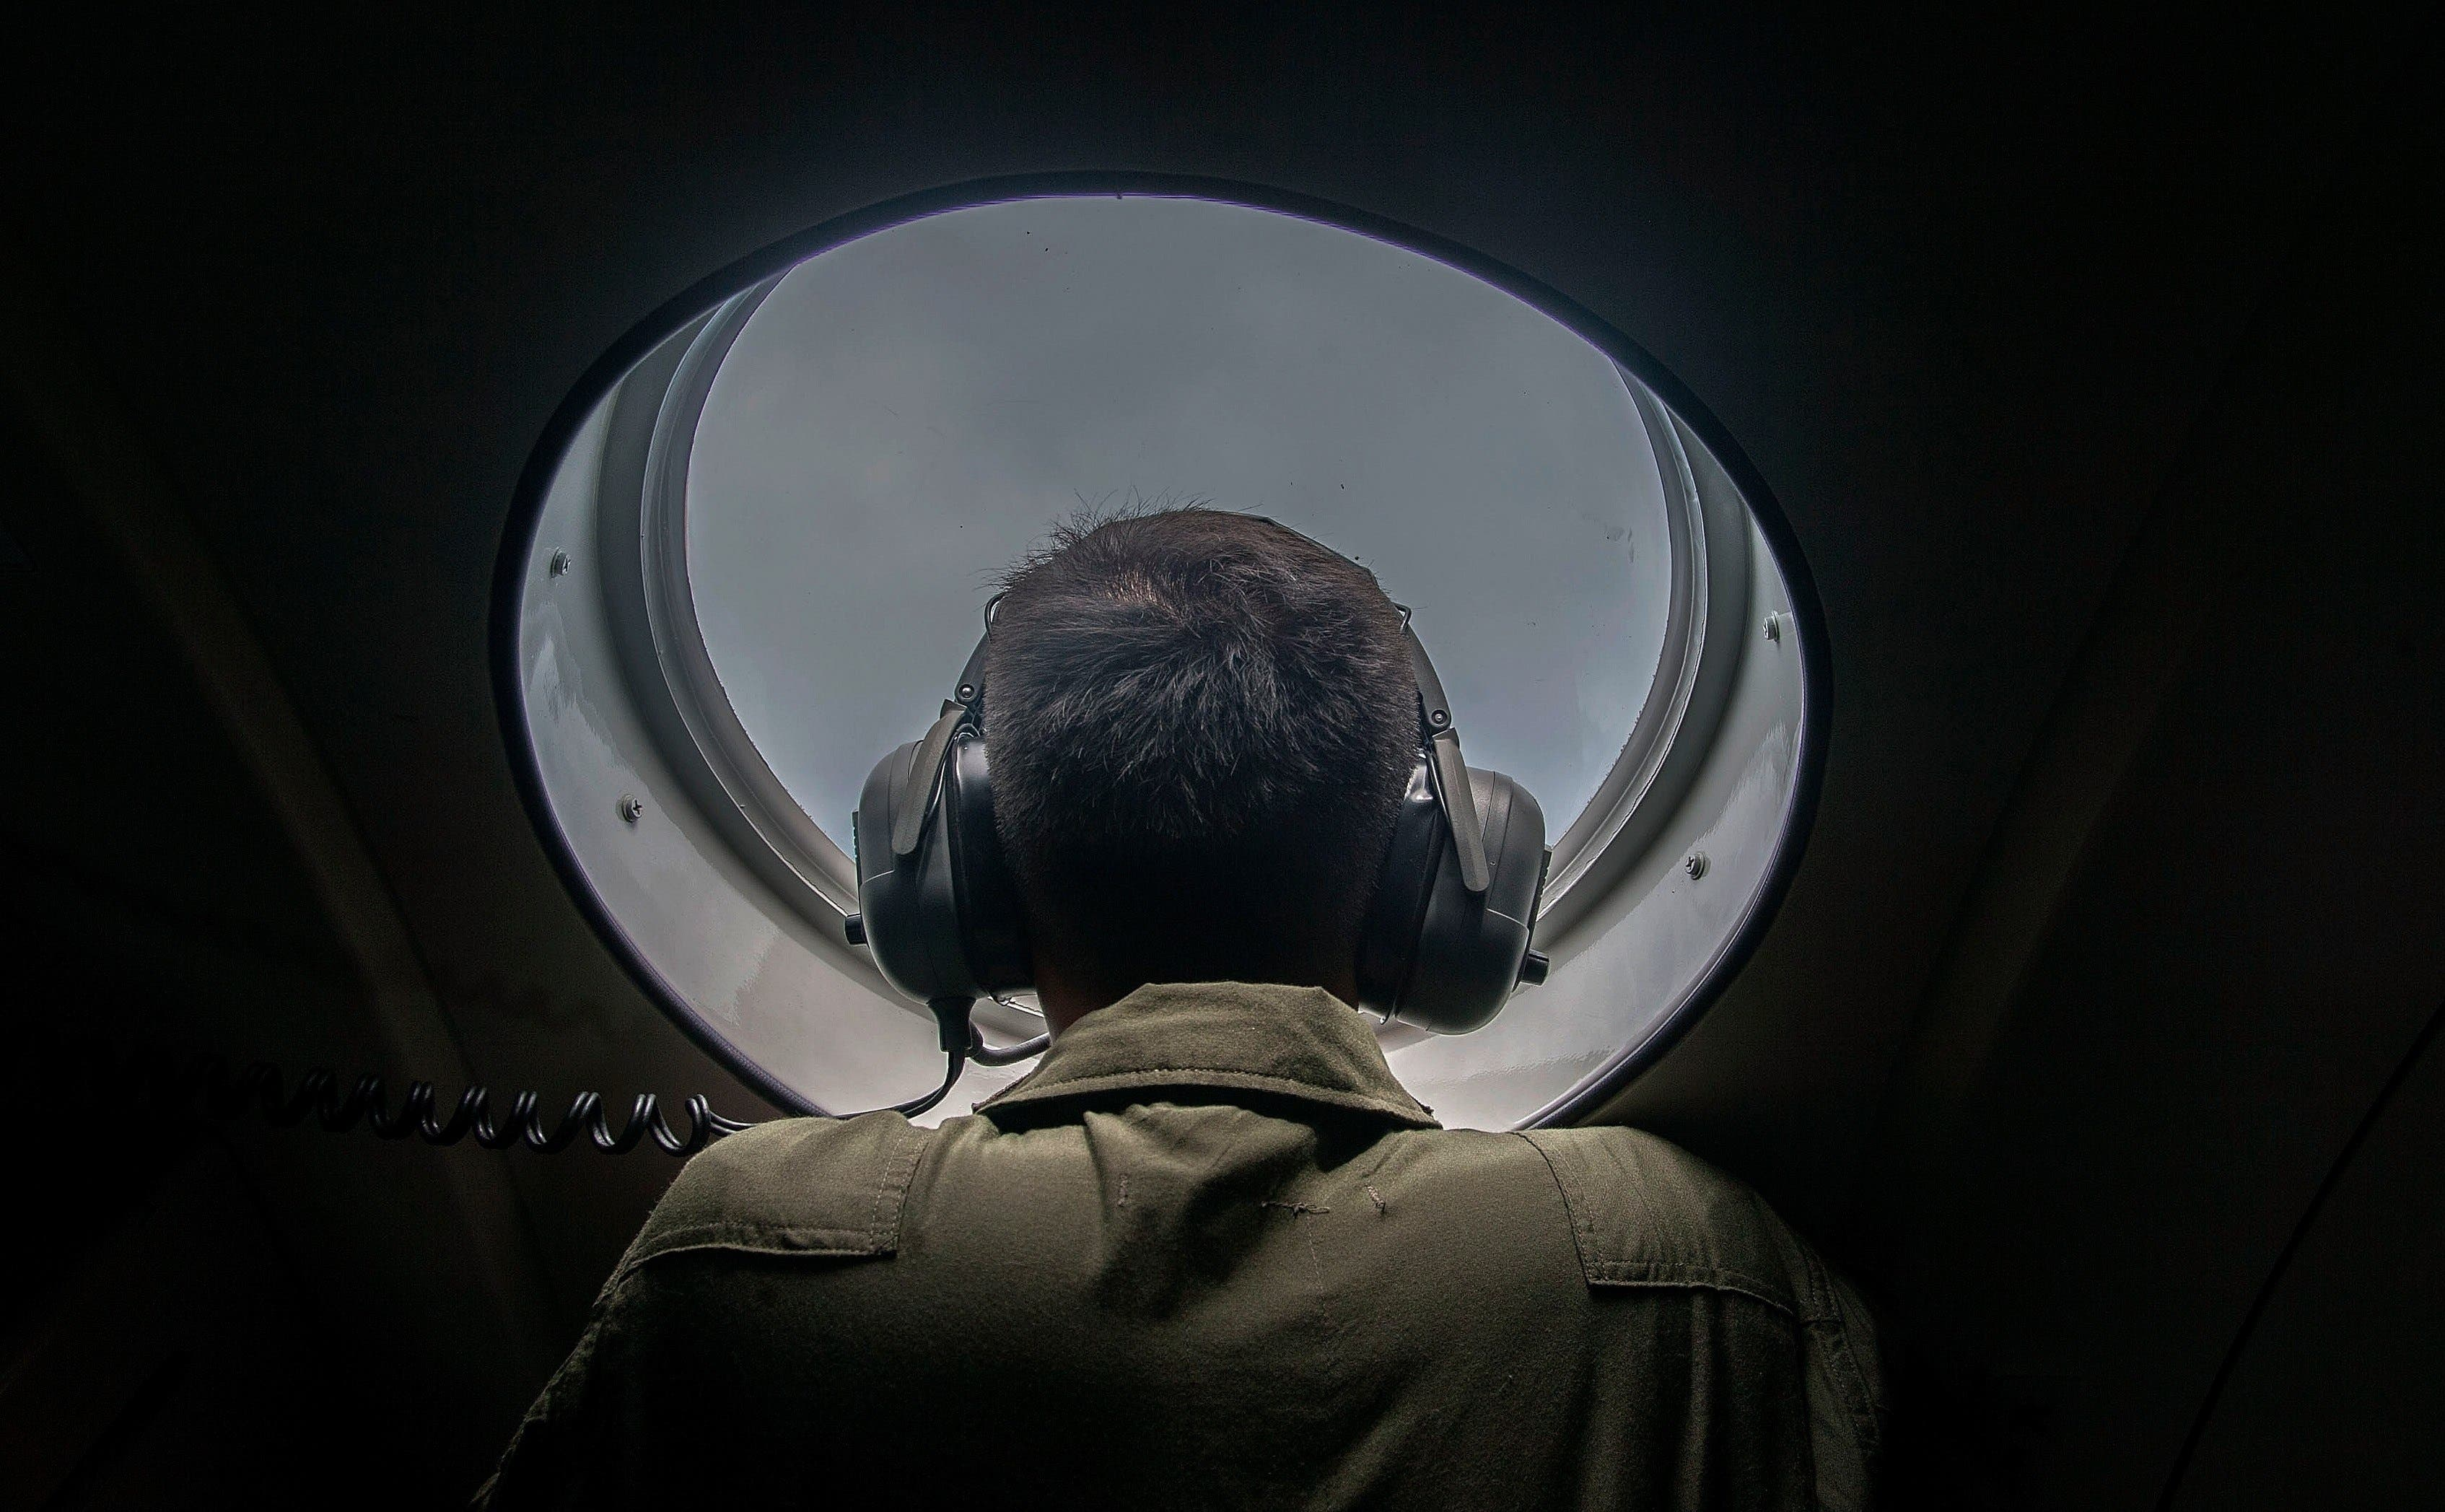 A member of the Indonesian military looks out of the window during a search and rescue (SAR) operation for missing Malaysian air carrier AirAsia flight QZ8501, over the waters of the Java Sea on Dec. 29, 2014.  (AFP)